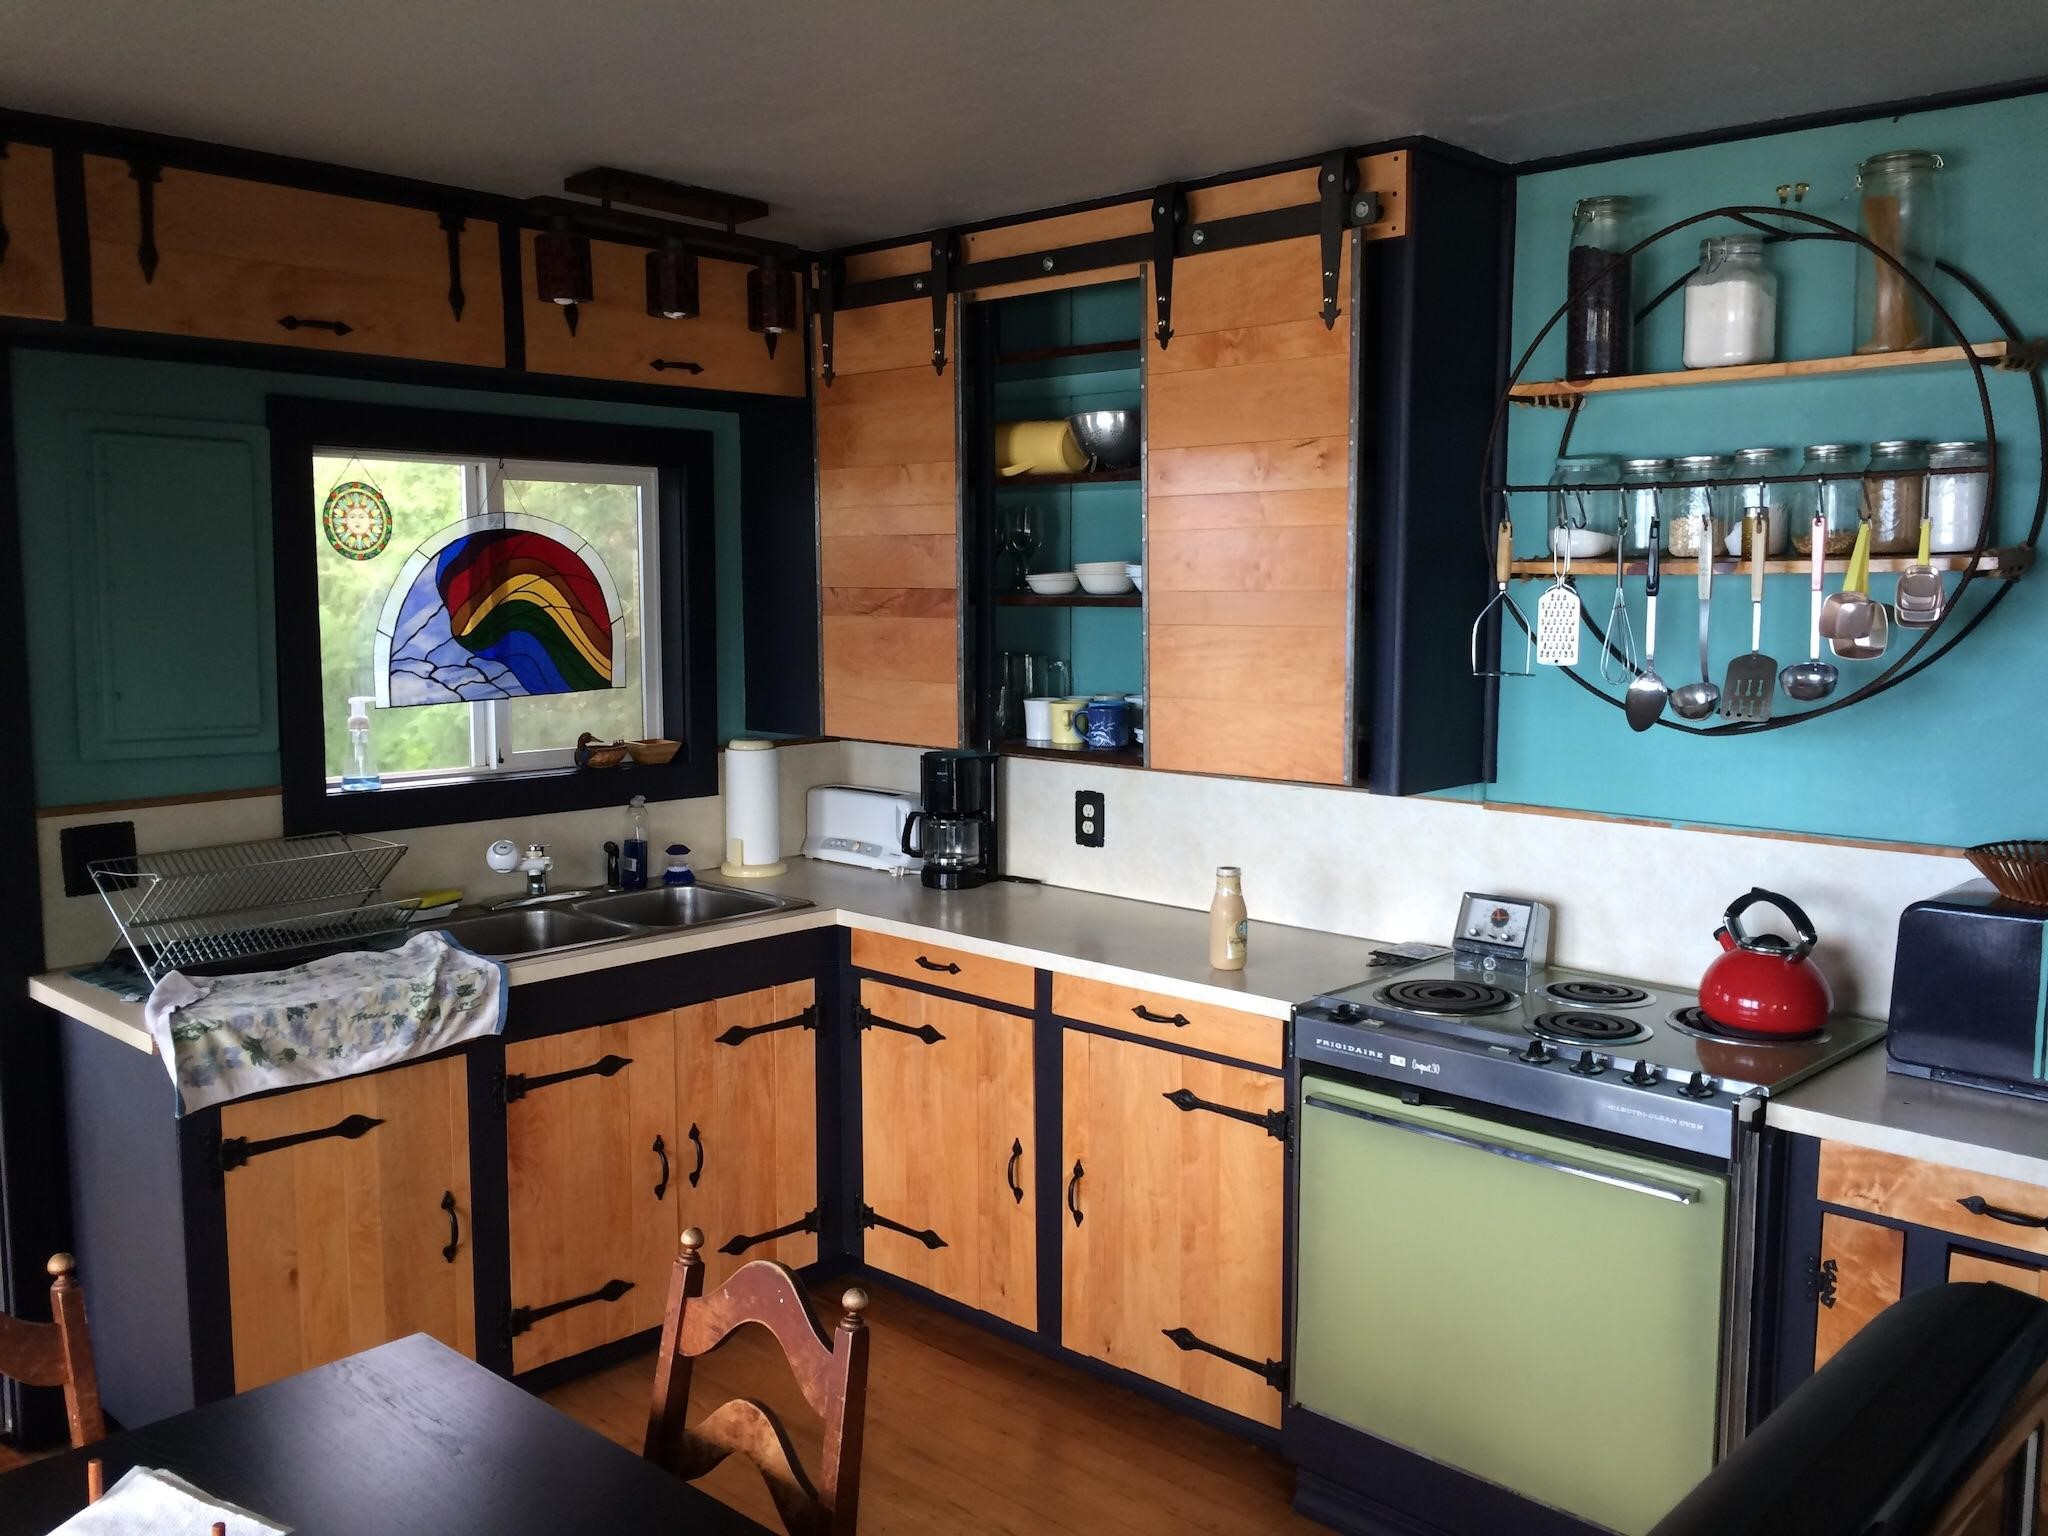 A colourful Airbnb kitchen with timber cupboards